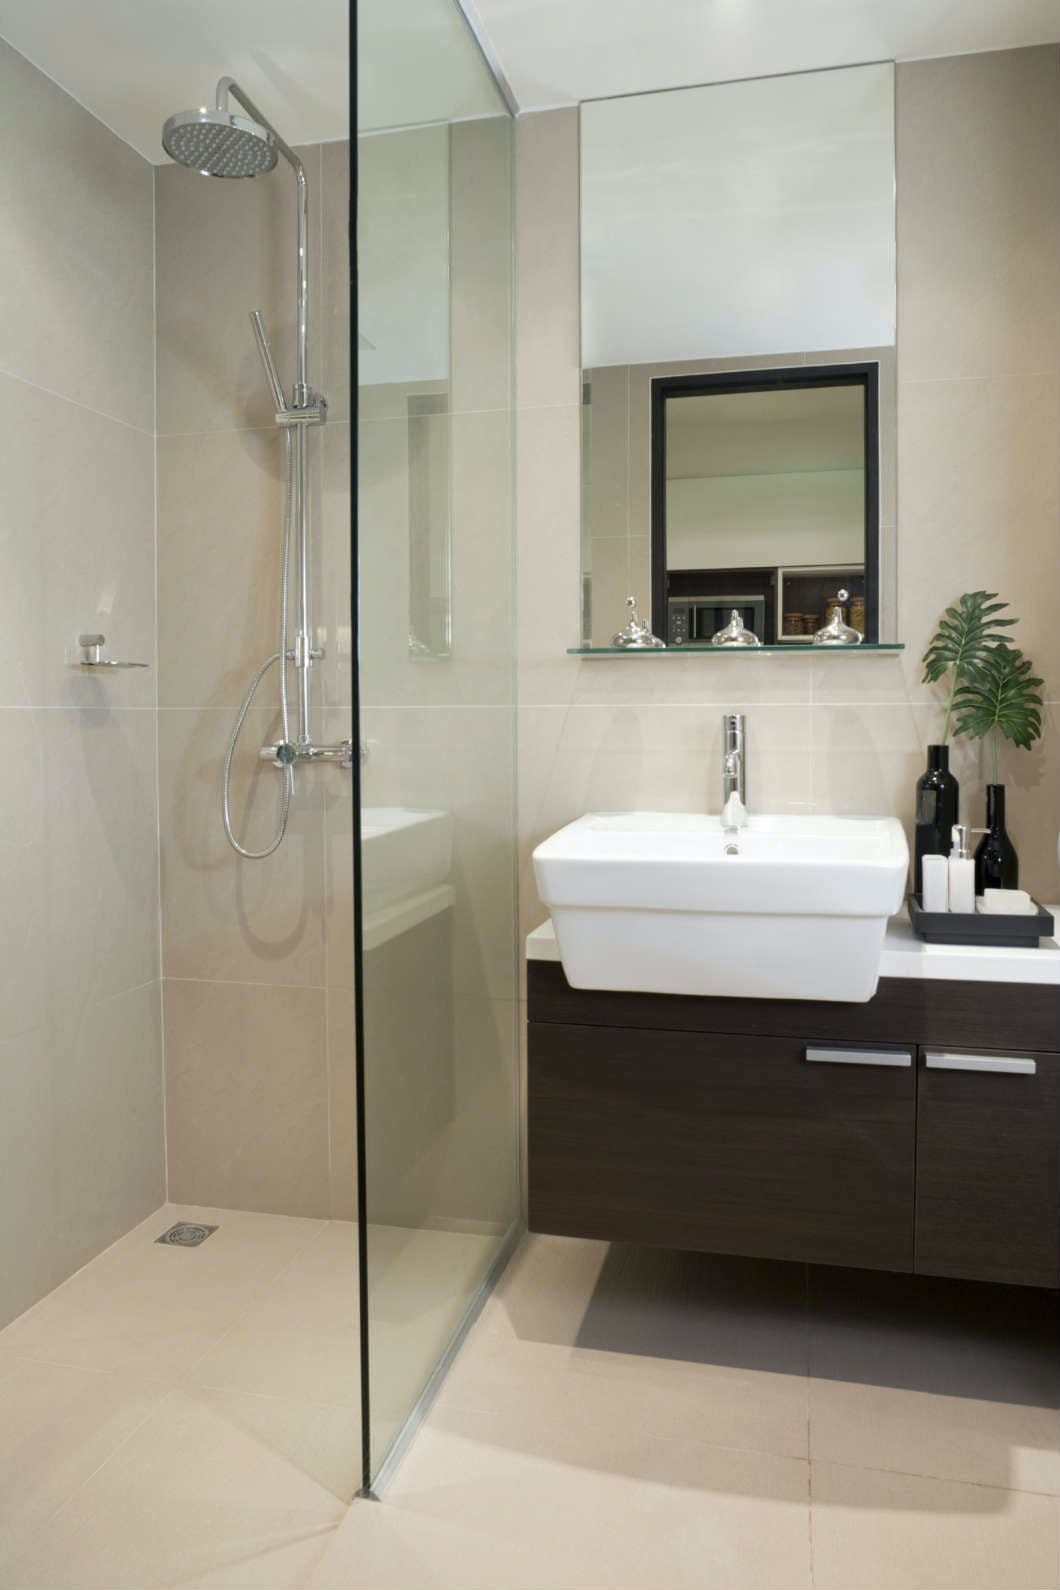 Dream en suite bathrooms designed fit by more bathrooms for Images of en suite bathrooms